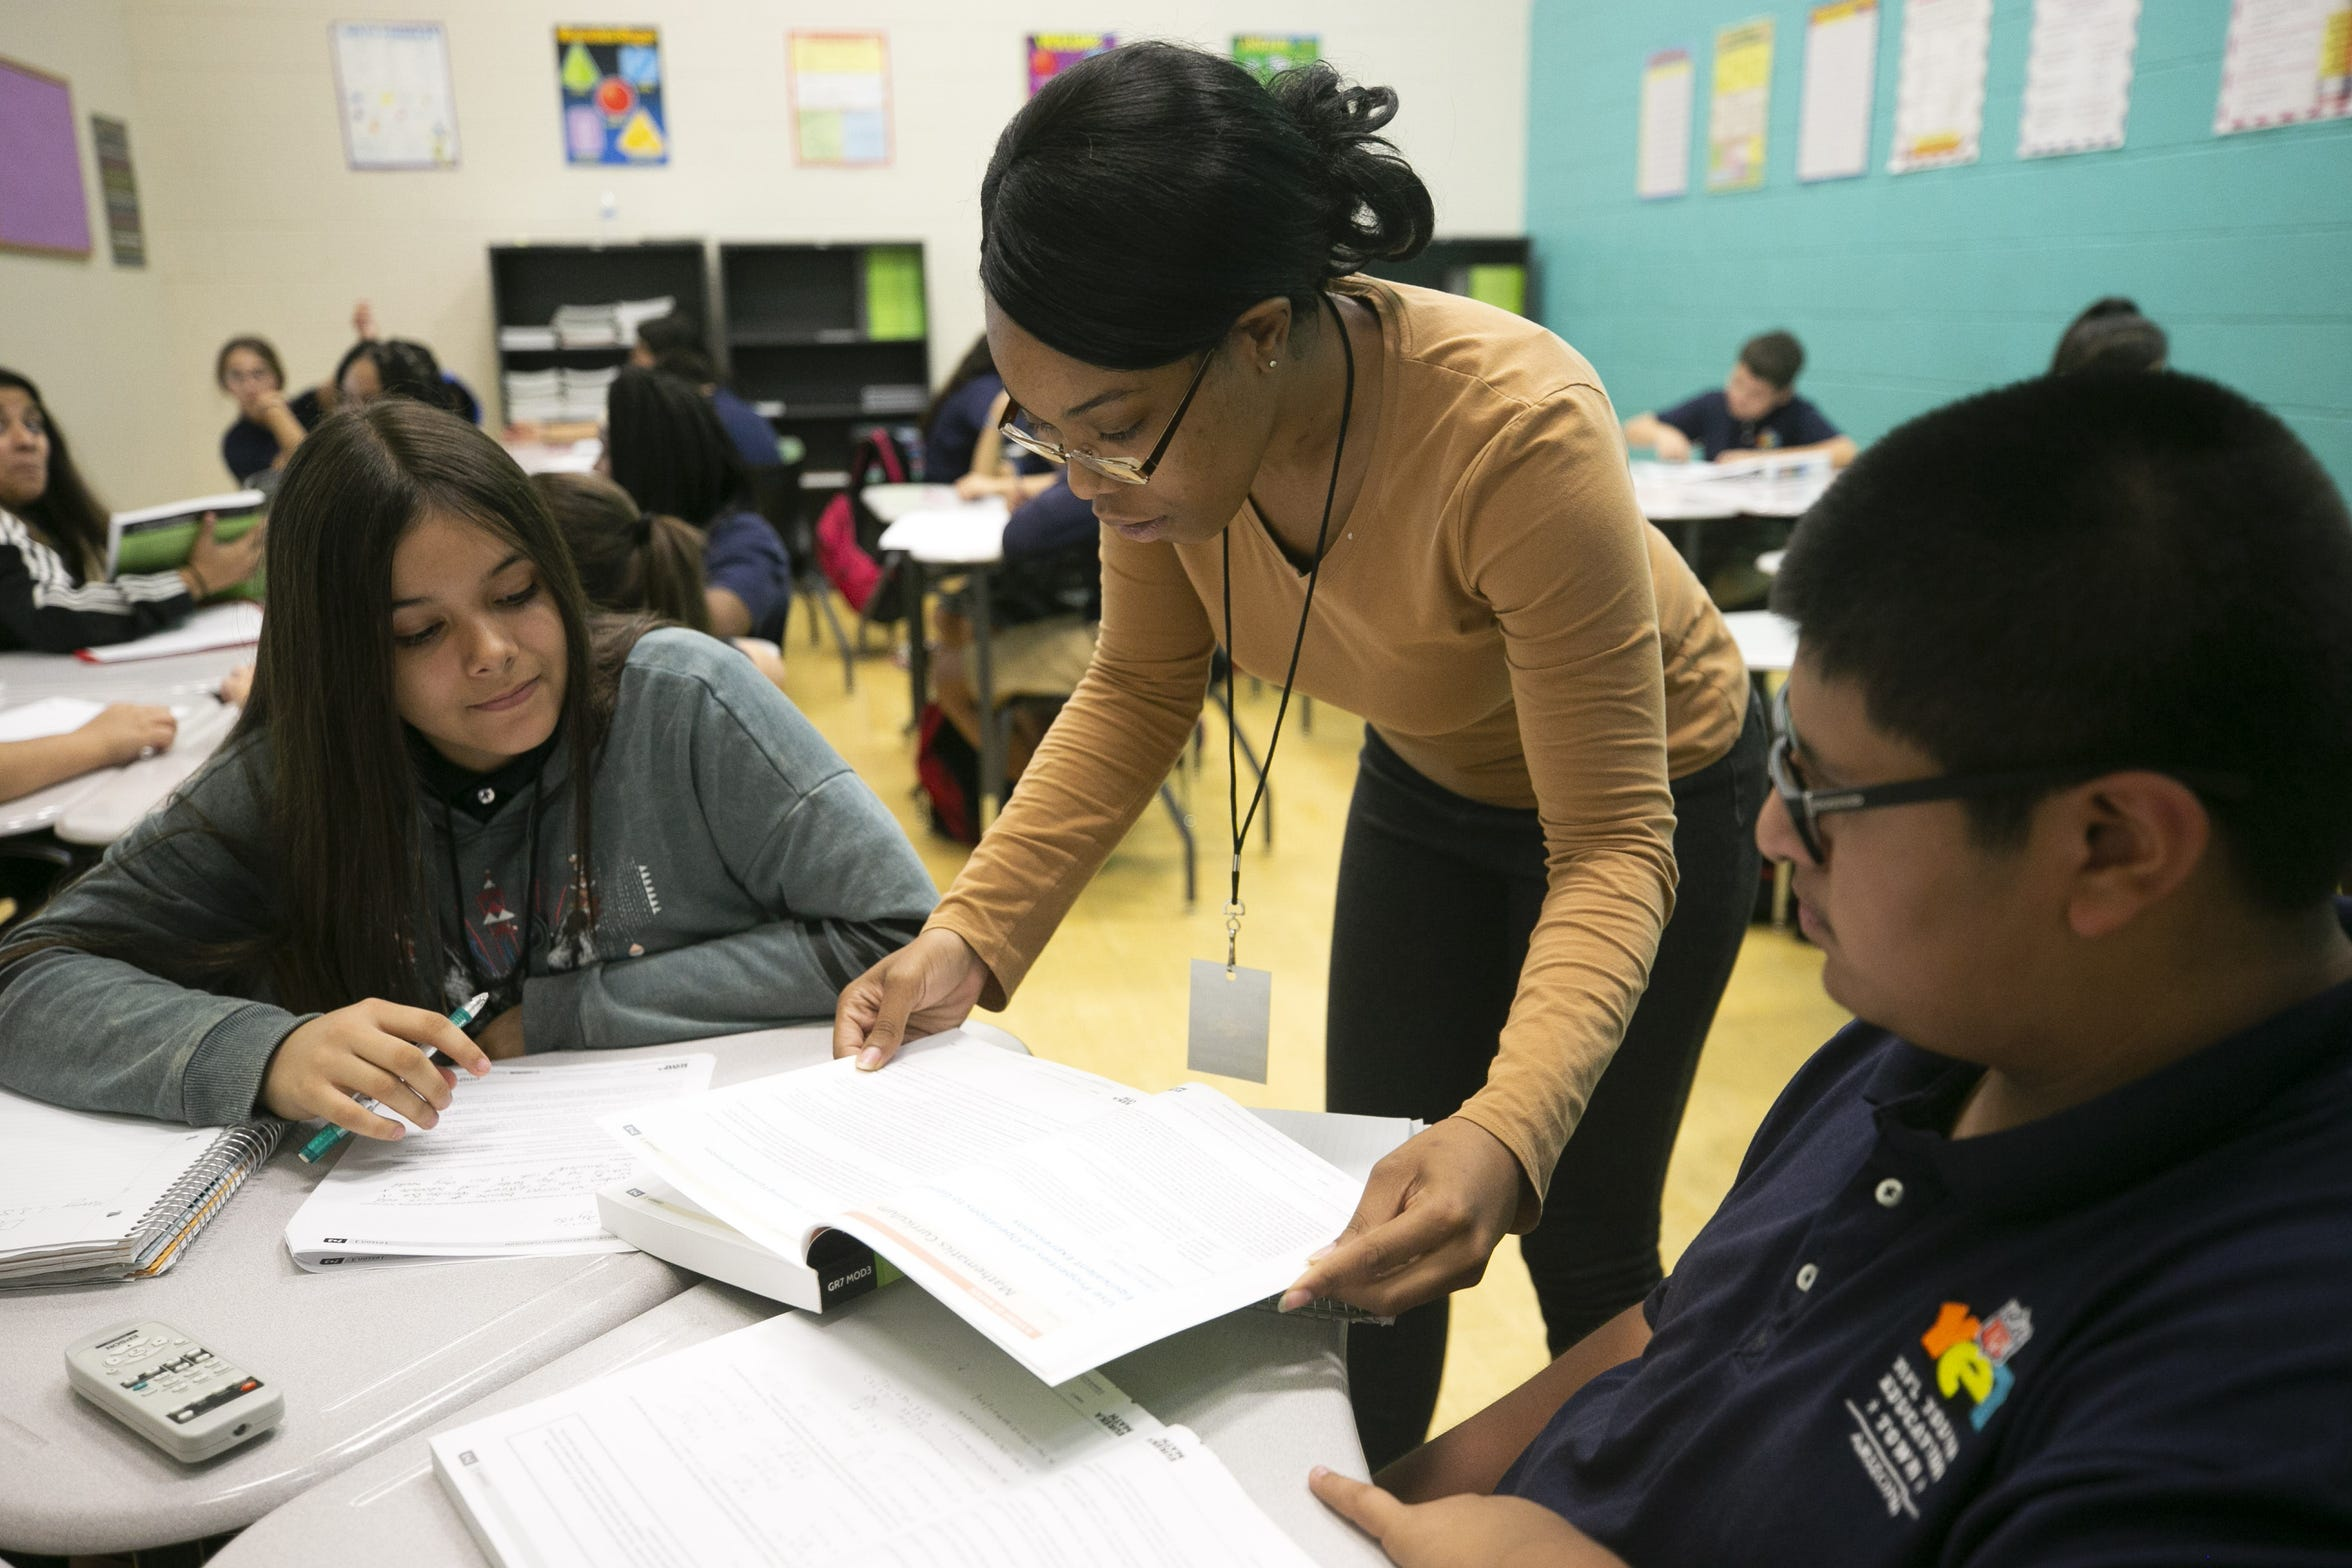 Math teacher Kori Hayles helps Angelina Parr, 12, and Raul Samano, 12, in the seventh grade math class at the NFL YET College Prep Academy on Nov. 5, 2018.